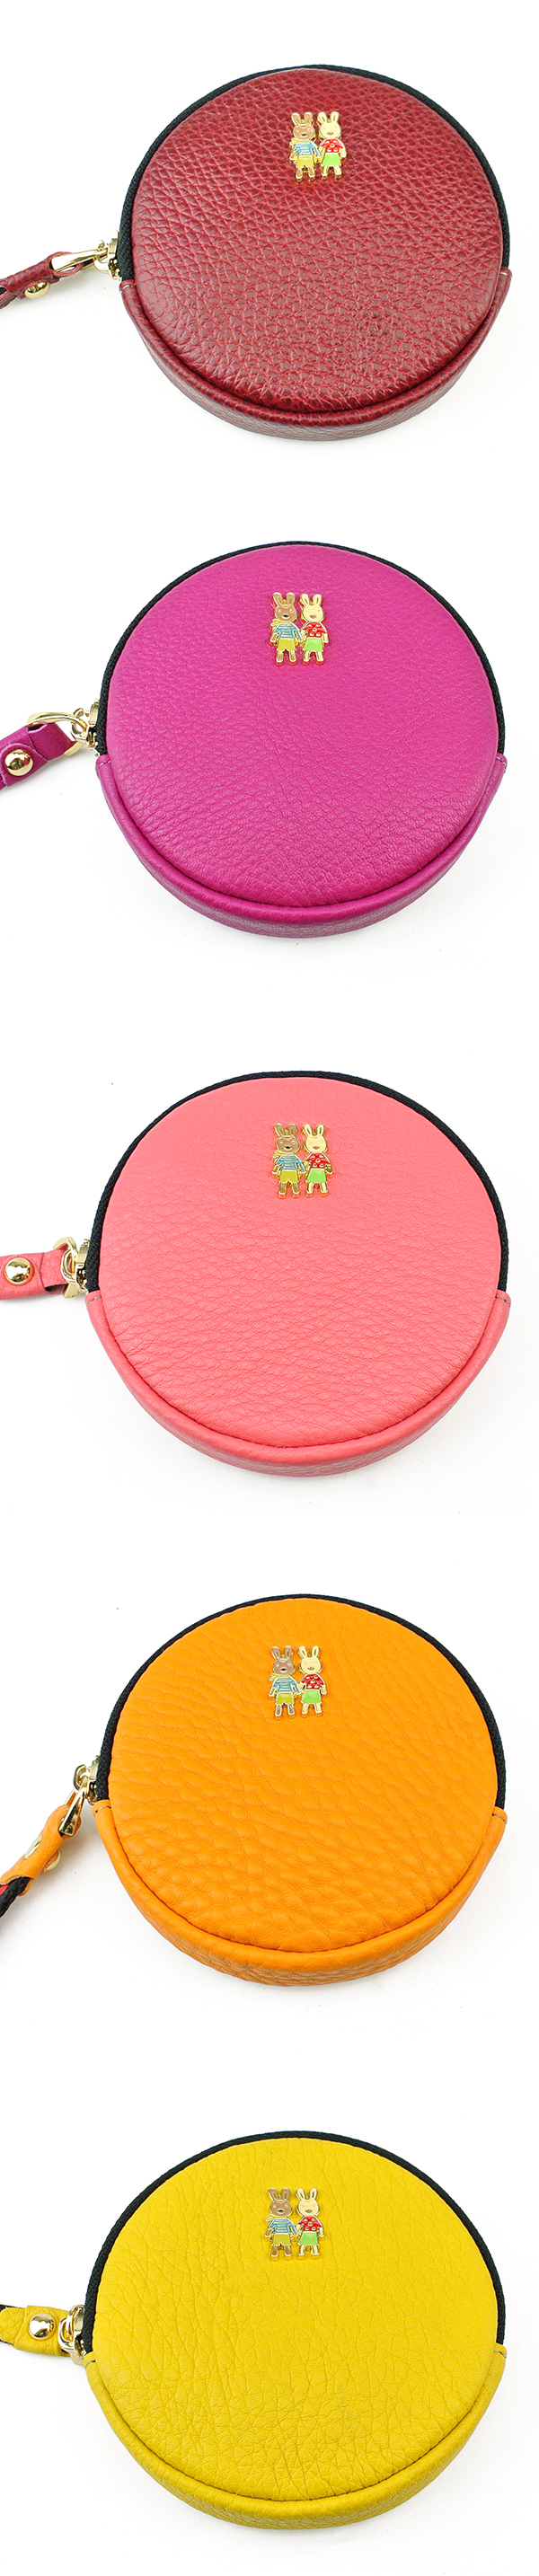 Genuine Leather Purse Fresh Personality Coin Bag Key Bag